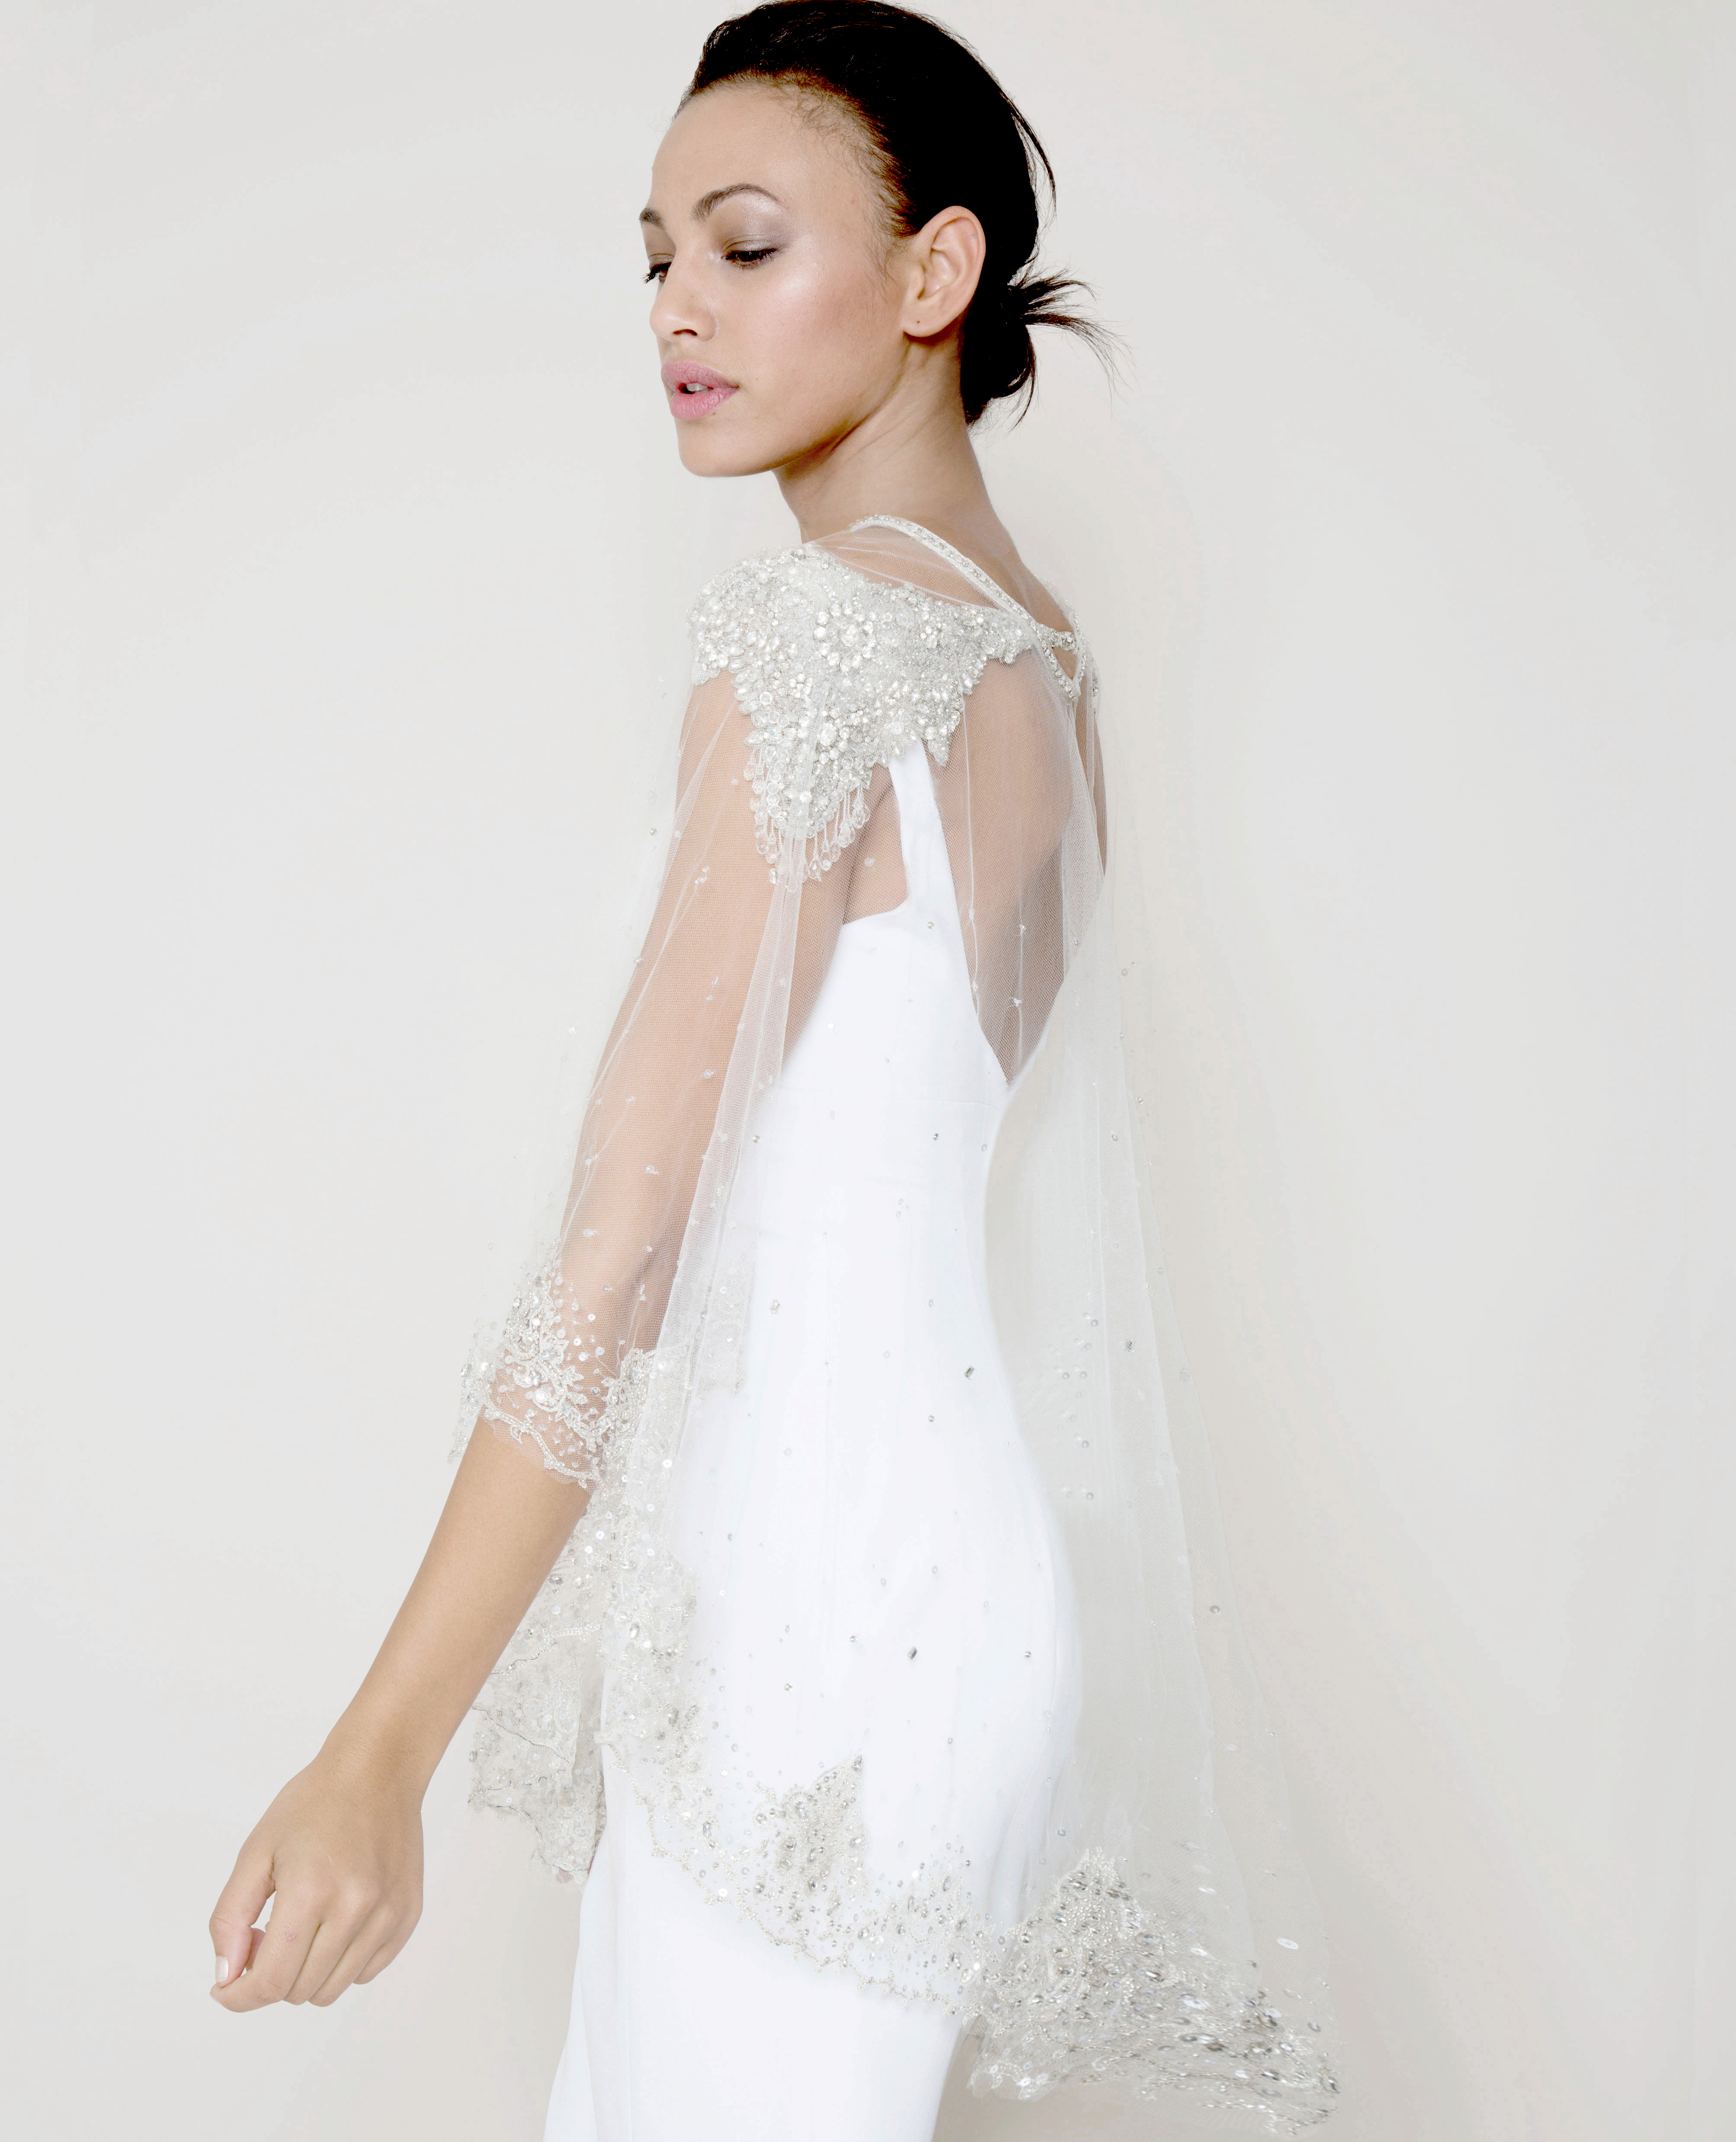 Selia Yang ~ Evening, Bridal, & Wedding Gowns Designer NYC